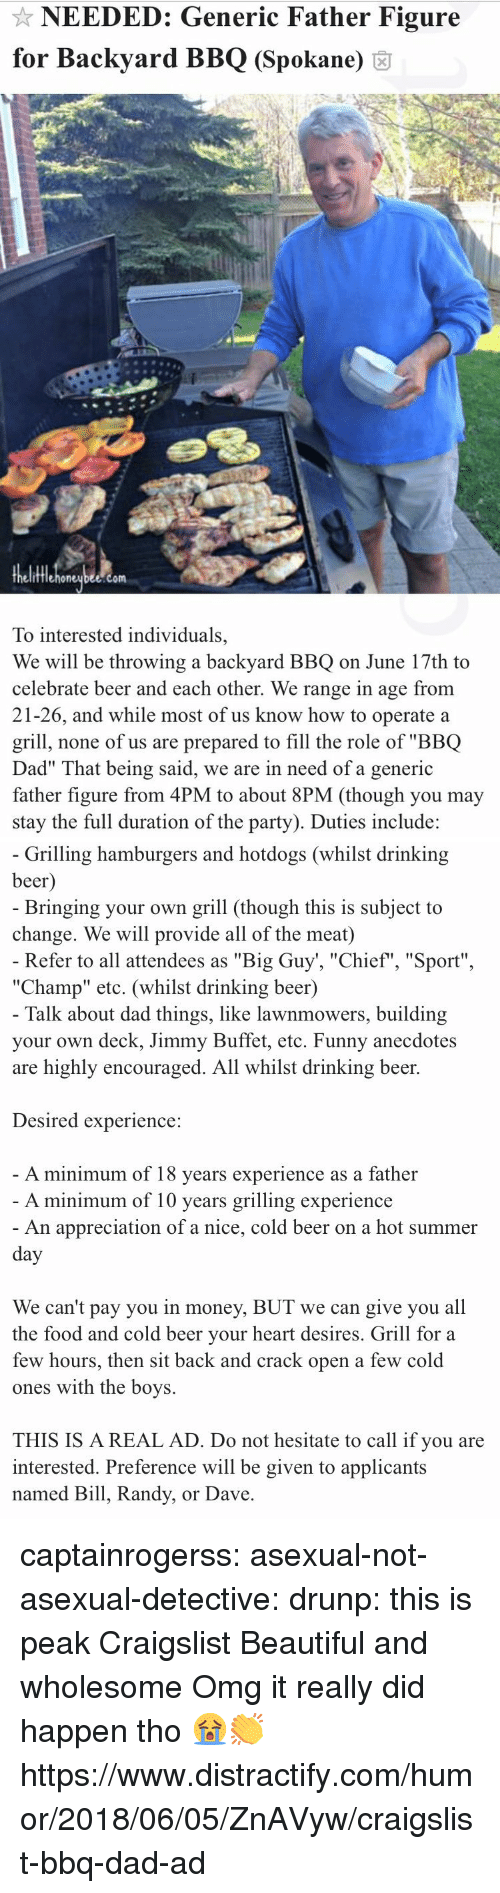 "Beautiful, Beer, and Craigslist: NEEDED: Generic Father Figure  for Backyard BBQ (Spokane) 6  fflehoneubee.com  To interested individuals,  We will be throwing a backyard BBQ on June 17th to  celebrate beer and each other. We range in age from  21-26, and while most of us know how to operate a  grill, none of us are prepared to fill the role of ""BBQ  Dad"" That being said, we are in need of a generic  father figure from 4PM to about 8PM (though you may  stay the full duration of the party). Duties include:   Grilling hamburgers and hotdogs (whilst drinking  beer  Bringing your own grill (though this is subject to  change. We will provide all of the meat)  Refer to all attendees as ""Big Guy', ""Chief"", ""Sport""  ""Champ"" etc. (whilst drinking beer)  Talk about dad things, like lawnmowers, building  your own deck, Jimmy Buffet, etc. Funny anecdotes  are highly encouraged. All whilst drinking beer.  Desired experience:  A minimum of 18 vears experience as a father  A minimum of 10 years grilling experience  An appreciation of a nice, cold beer on a hot summer  We can't pay you in money, BUT we can give you all  the food and cold beer vour heart desires. Grill for a  few hours, then sit back and crack open a few cold  ones with the boys.  THIS IS A REAL AD. Do not hesitate to call if you are  interested. Preference will be given to applicants  named Bill, Randy, or Dave captainrogerss:   asexual-not-asexual-detective:   drunp: this is peak Craigslist  Beautiful and wholesome   Omg it really did happen tho 😭👏 https://www.distractify.com/humor/2018/06/05/ZnAVyw/craigslist-bbq-dad-ad"